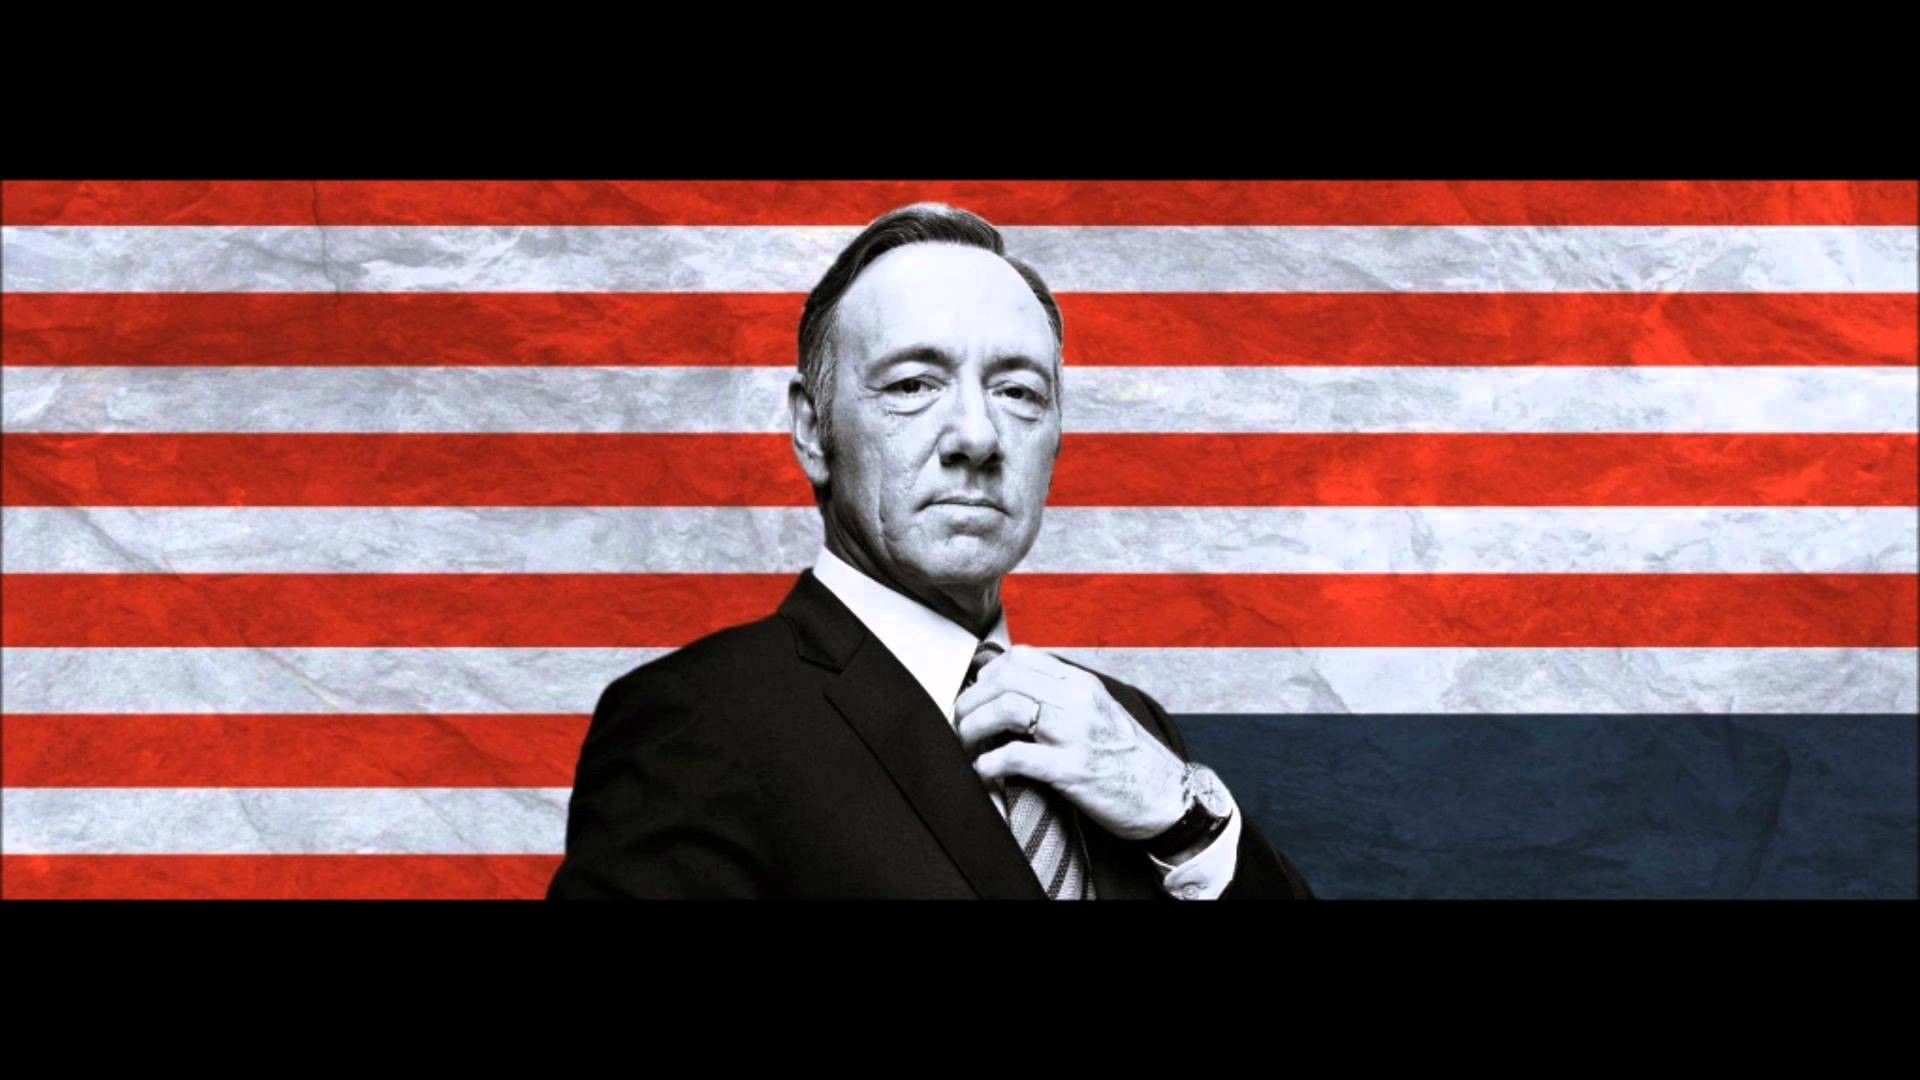 Iphone 6 Plus House Of Cards 3 1402394 Hd Wallpaper